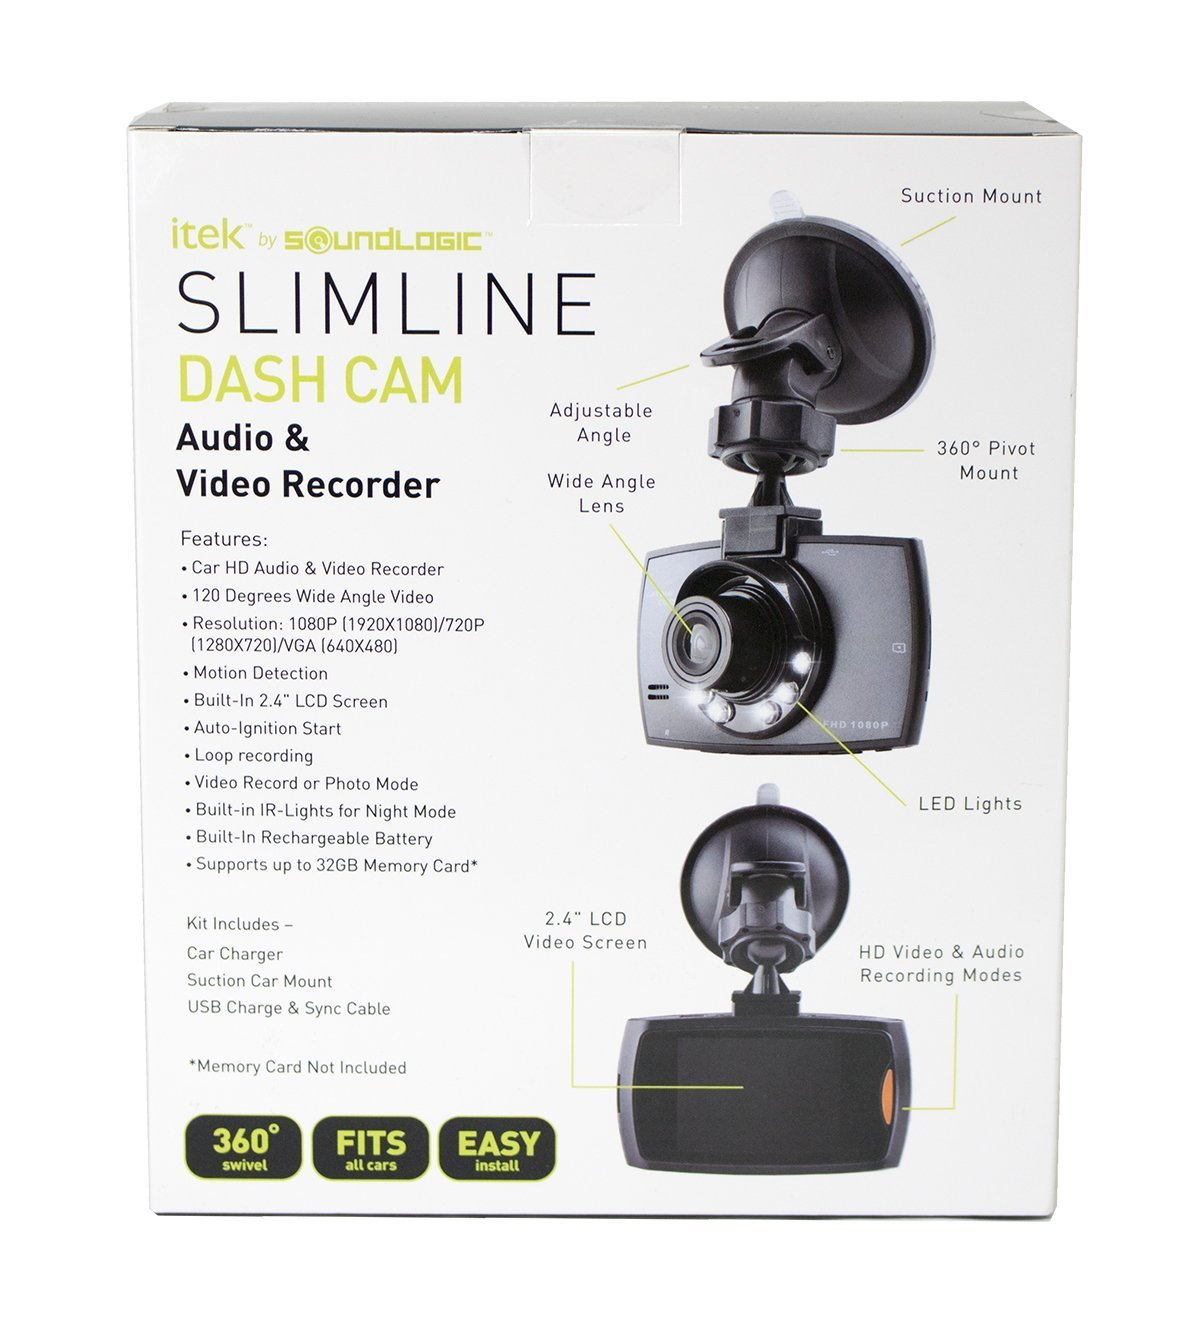 itek by soundlogic slimline dash cam manual